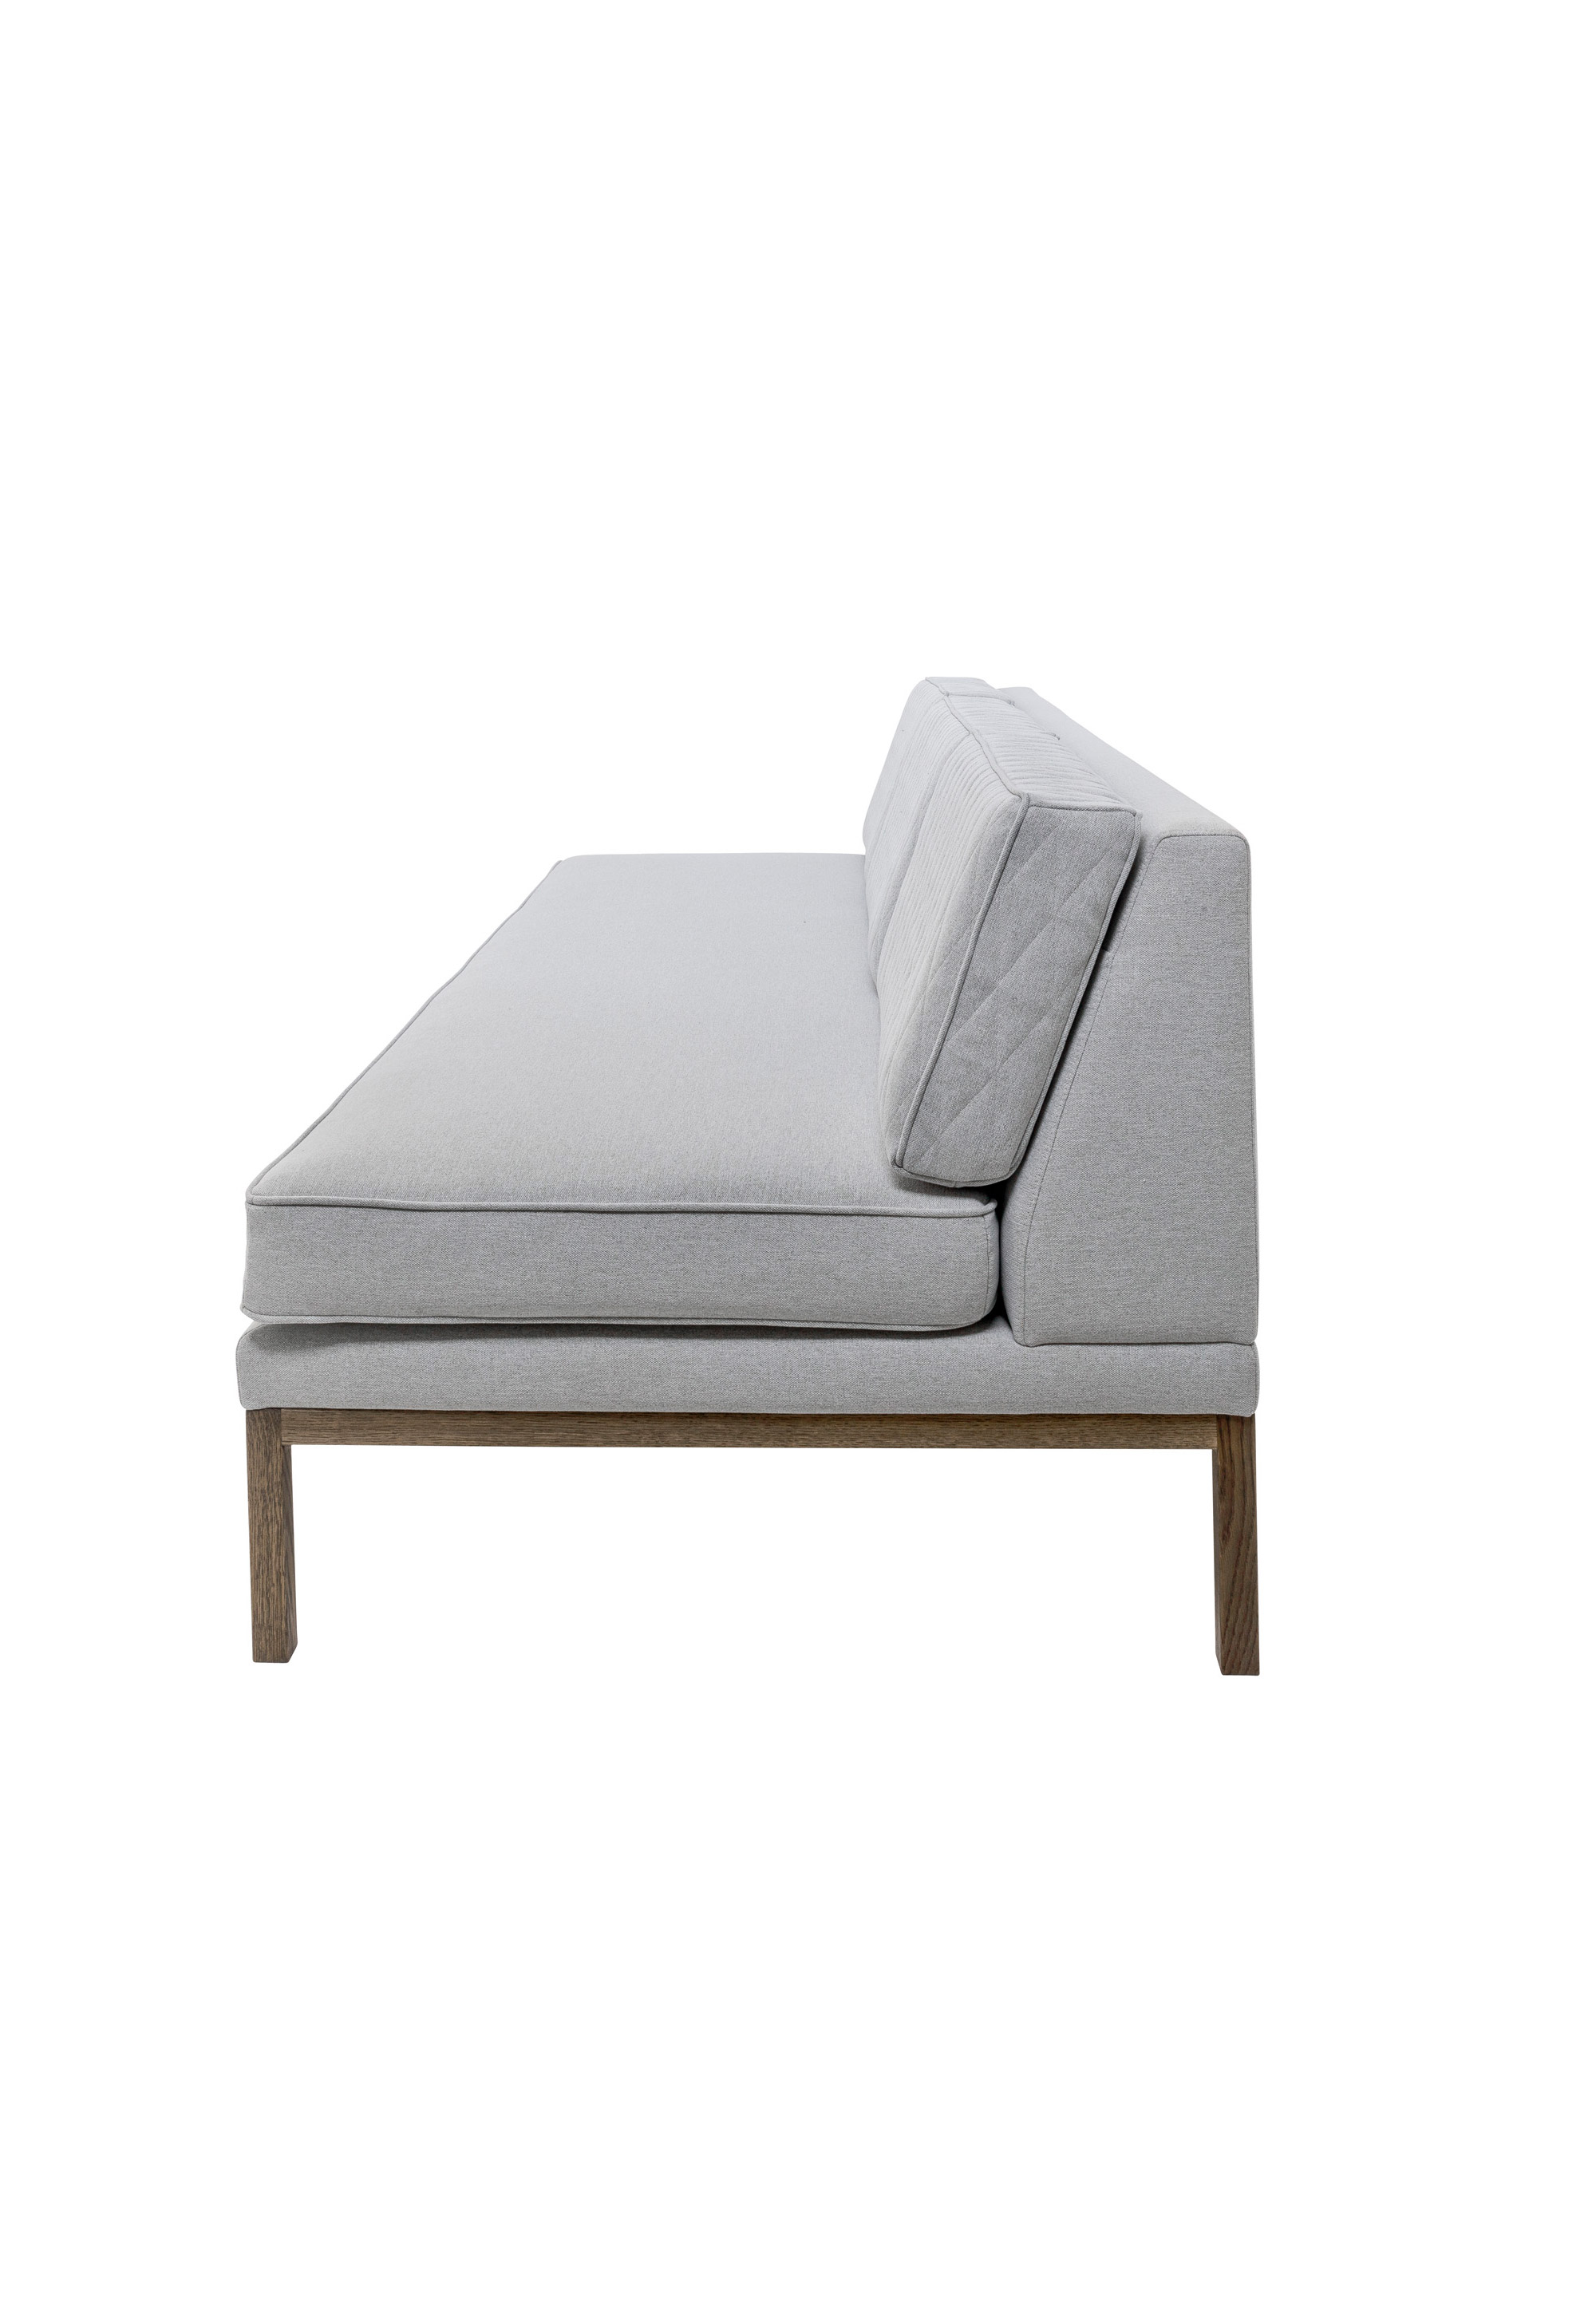 sofa_gris_lateral